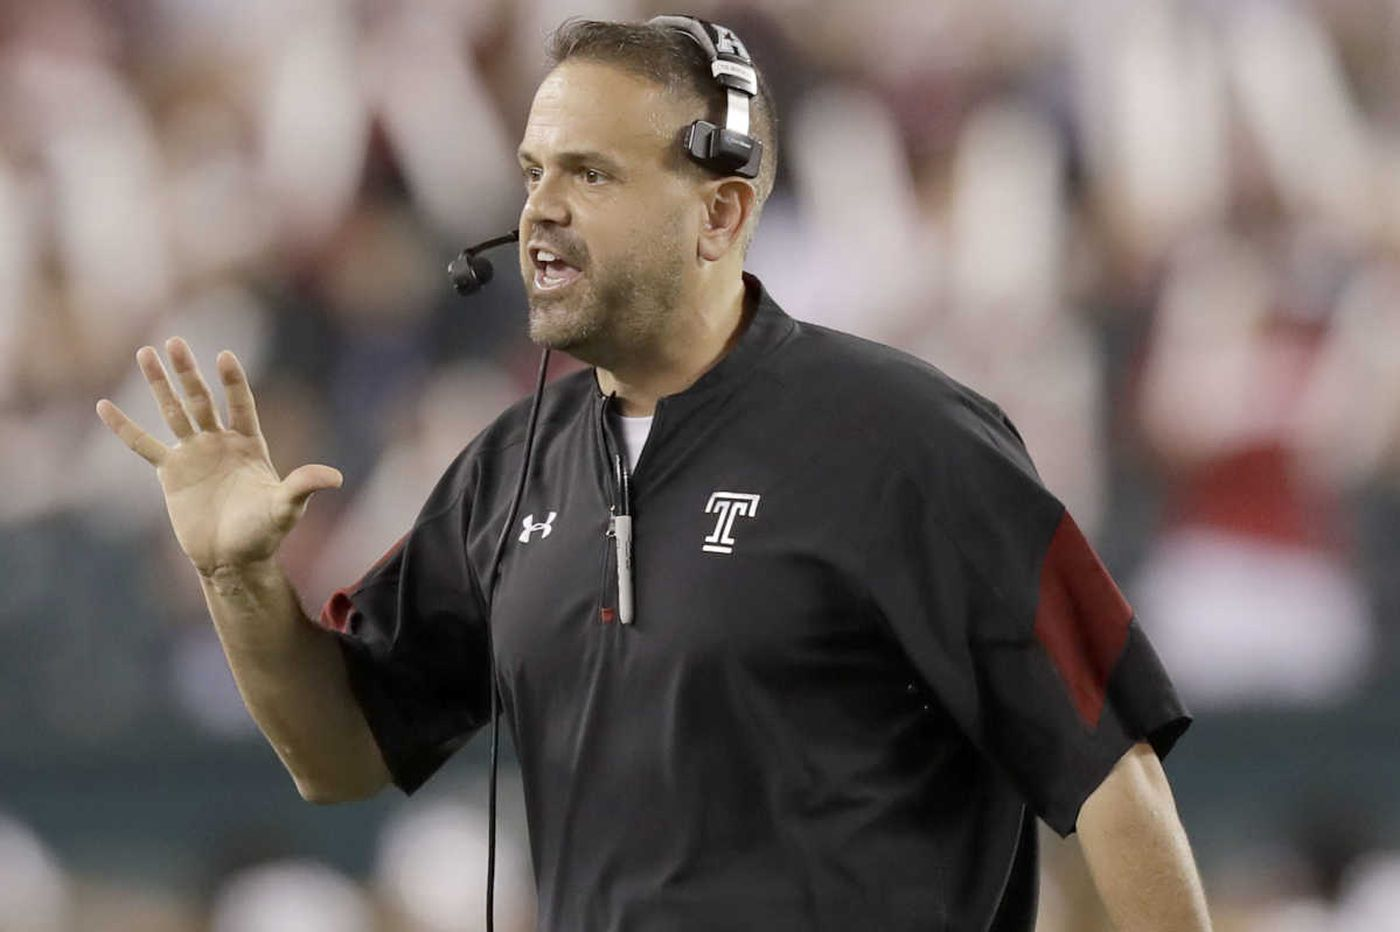 Kern: Rhule earned his way to a bigger school than Temple